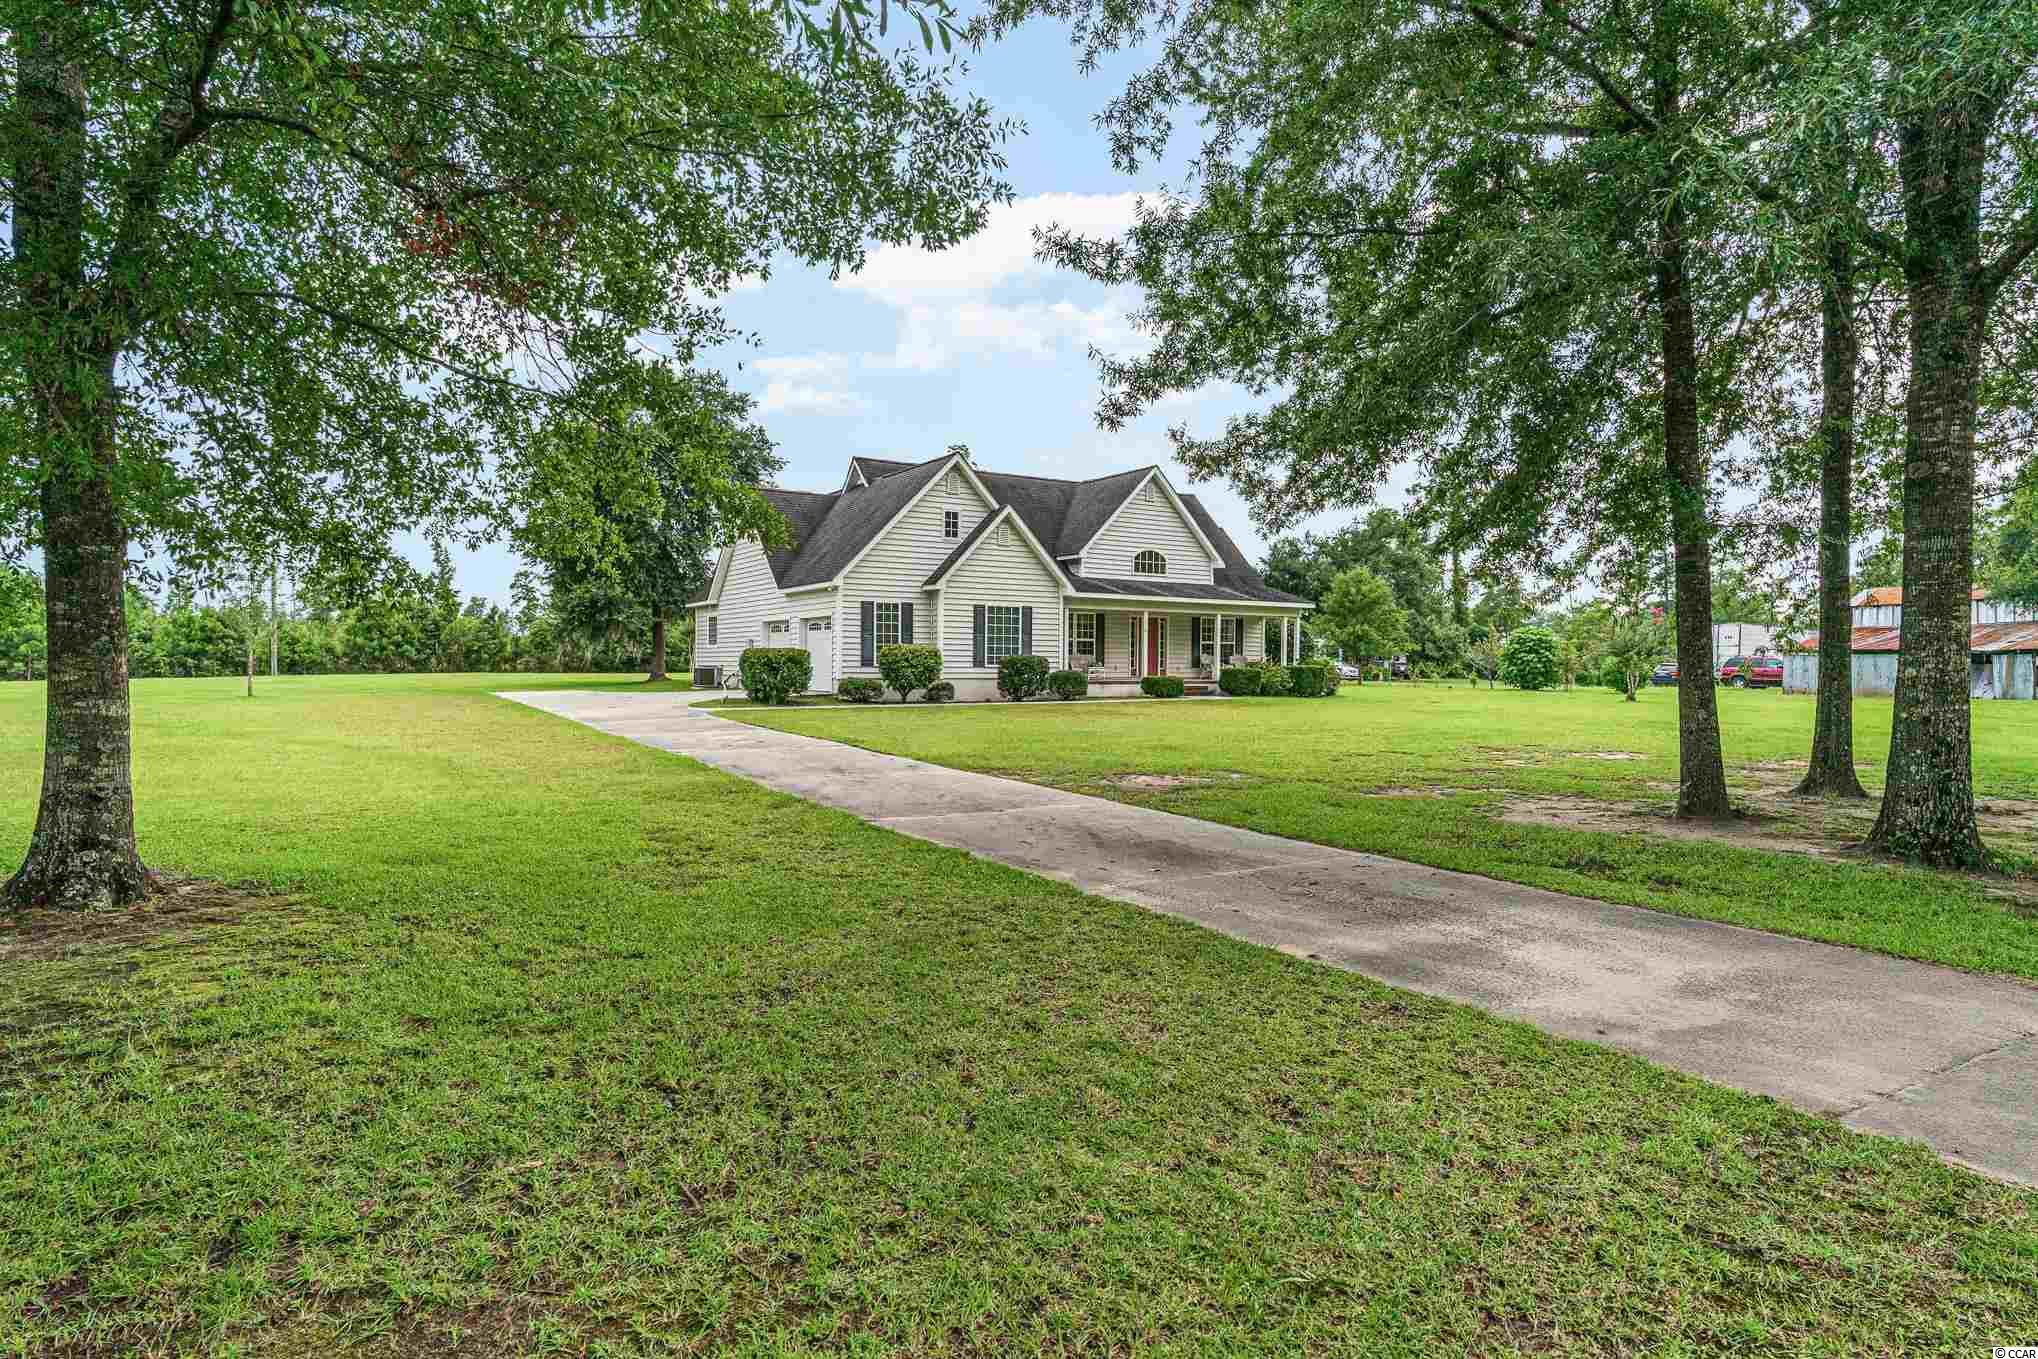 Peace and tranquility is what you will find when you drive up to 75 Fiddlers Loop. This beautiful move in ready, immaculate home, will not be available for long!  It has it all including a large front and back porch to sit, relax, and enjoy a tall cold sweet tea while enjoying all the nature on this 1 acre lot.  The home was only used as a getaway weekend home.  It has a deeded water access, so you can take your boat out, fish on the dock, or just sit and relax in the gazebo all while taking in the phenomenal scenery.   Vaulted ceilings give the home a wonderful open feel!  A spacious bonus room is located above the garage giving even more space to this spacious home.  Don't delay, you will want to see this beauty today!